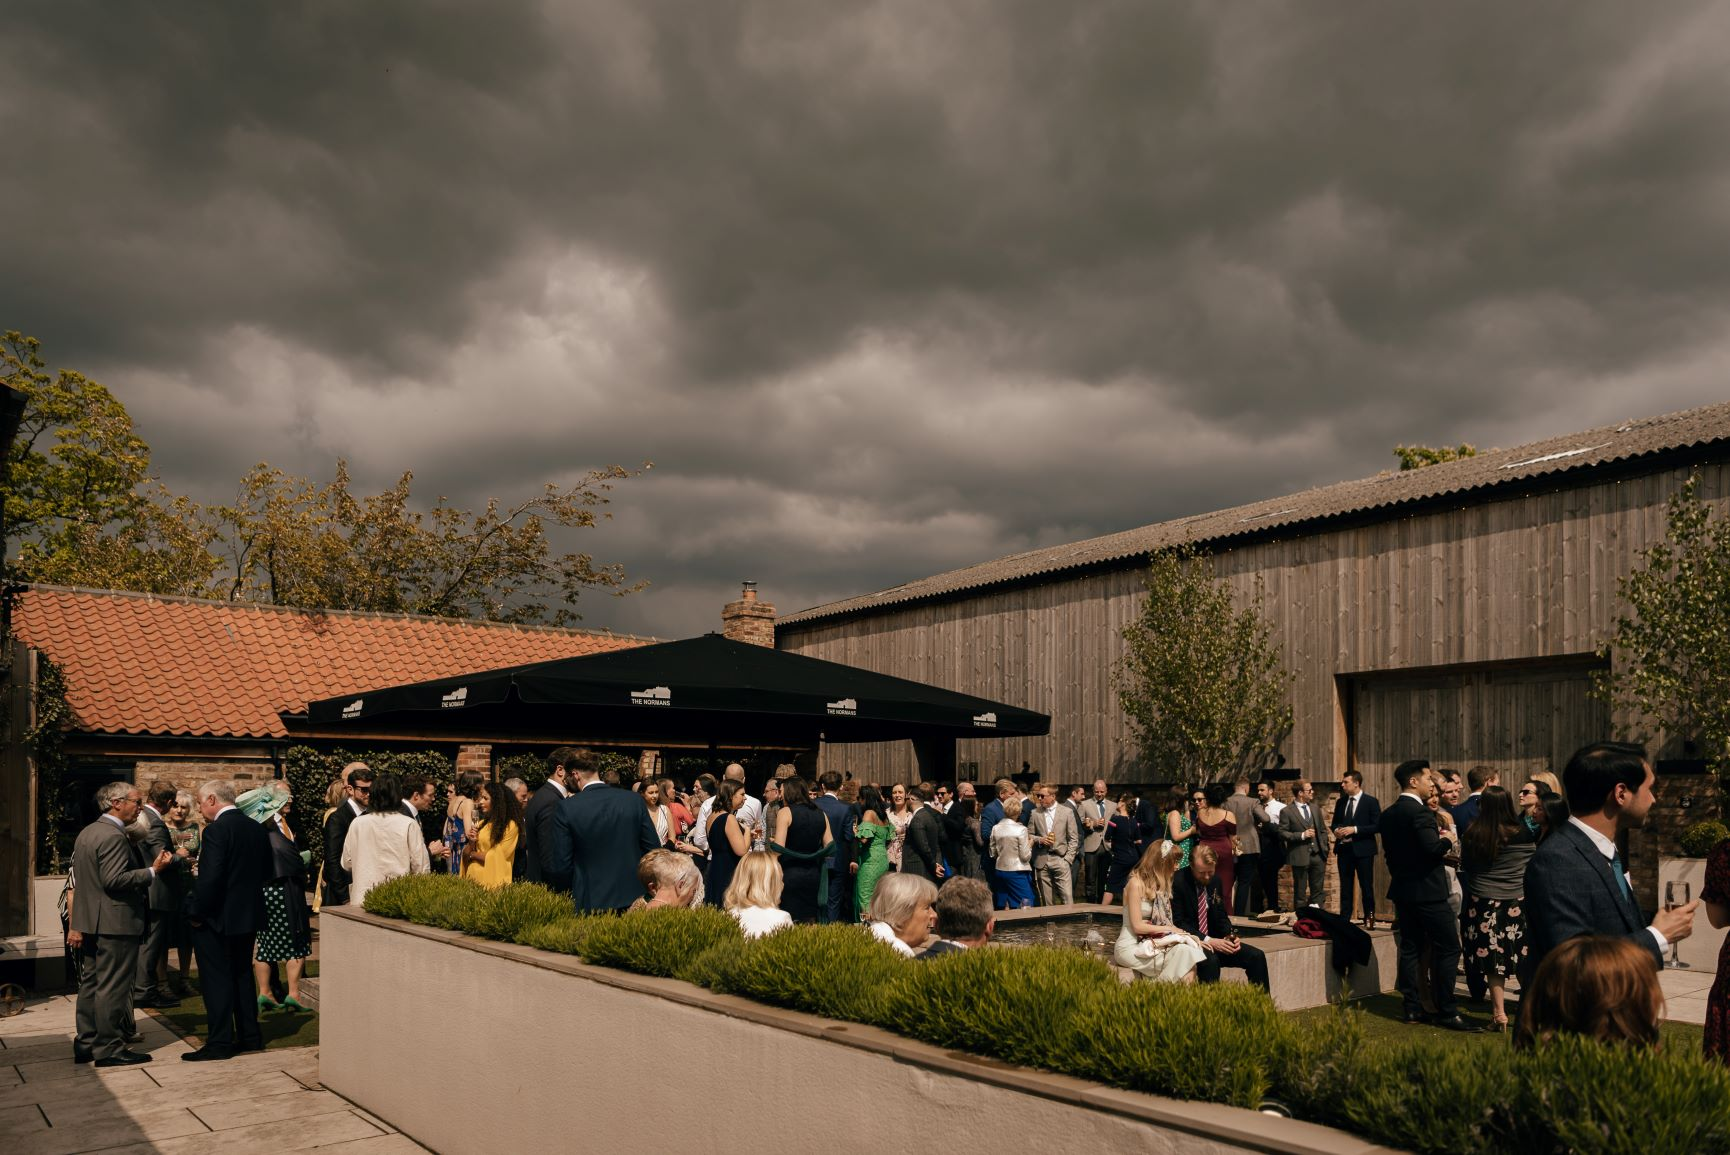 Brooding skies didn't deter guests from merrymaking in The Normans Courtyard. Photo by www.julesbarron.com